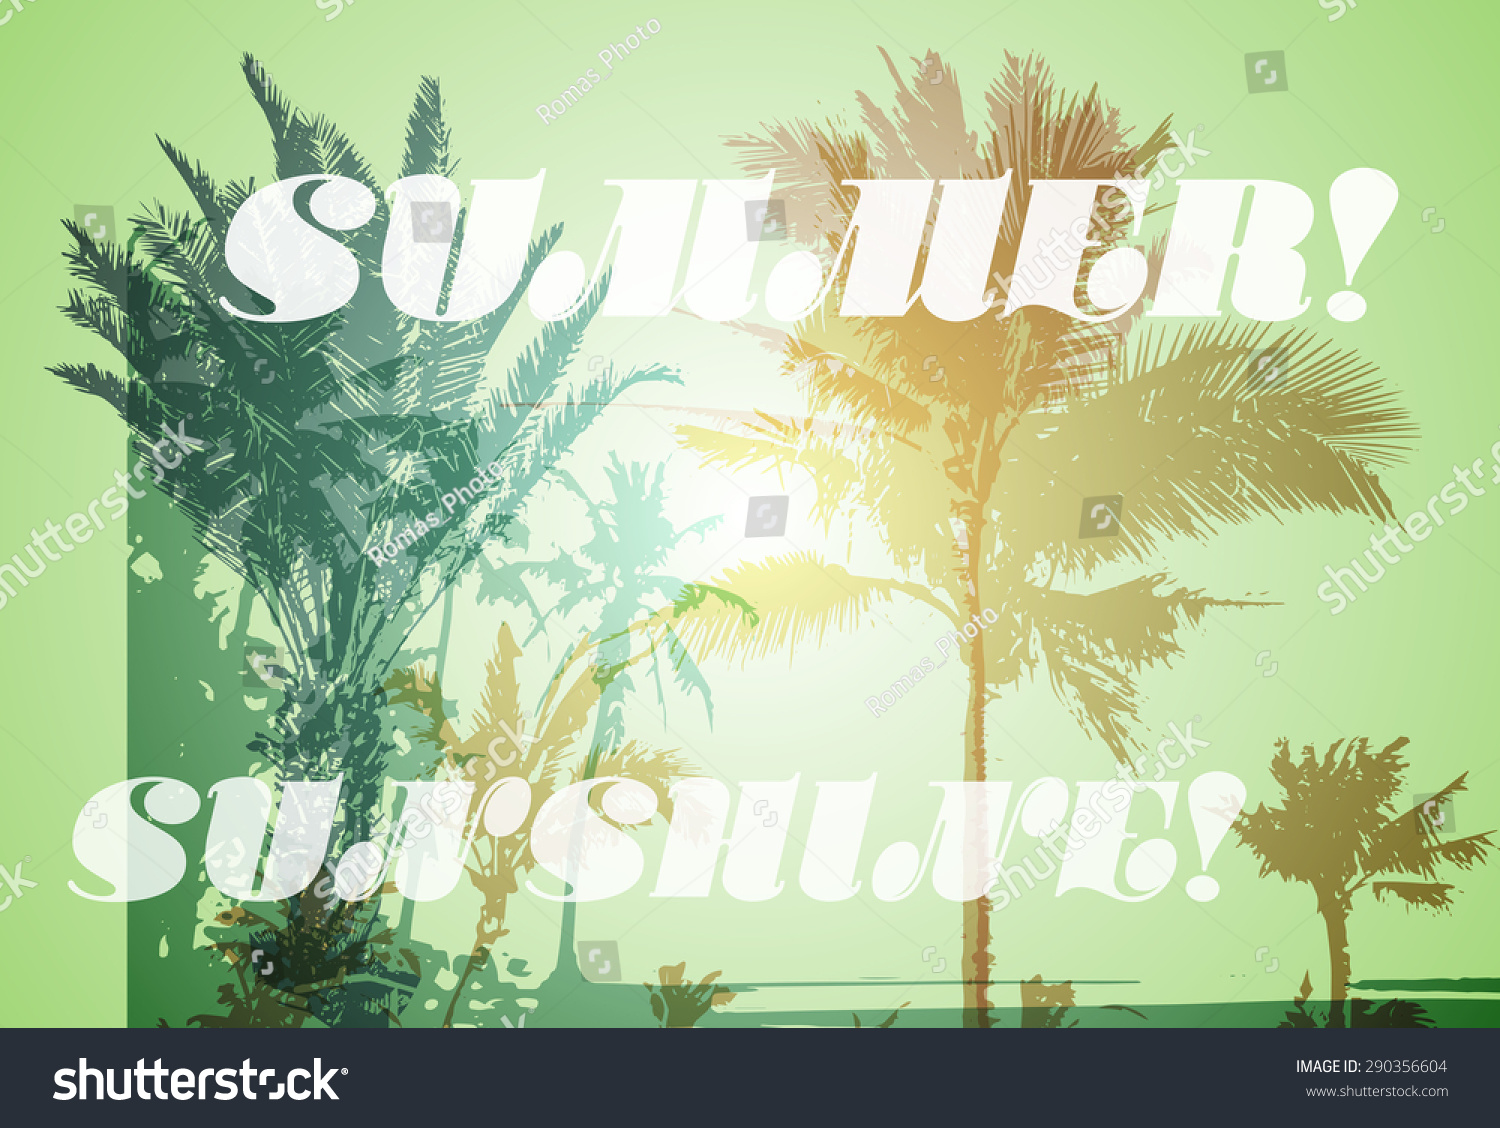 Colorful Background Silhouette Palm Trees On Stock Vector 290356604 ...